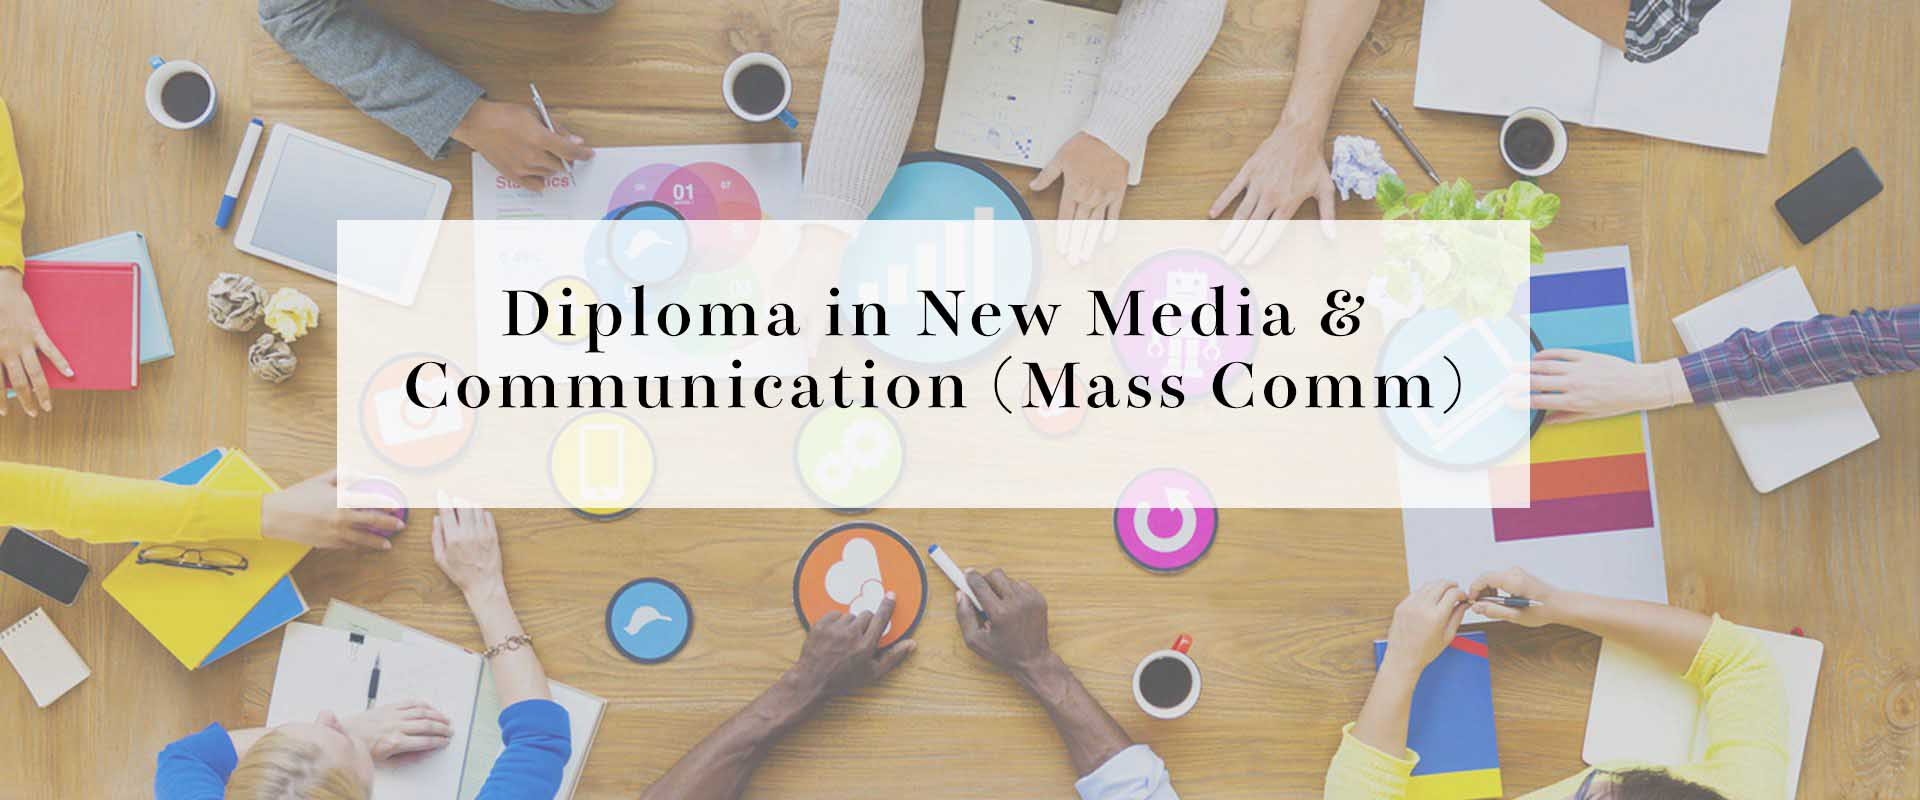 New Media & Communication Course